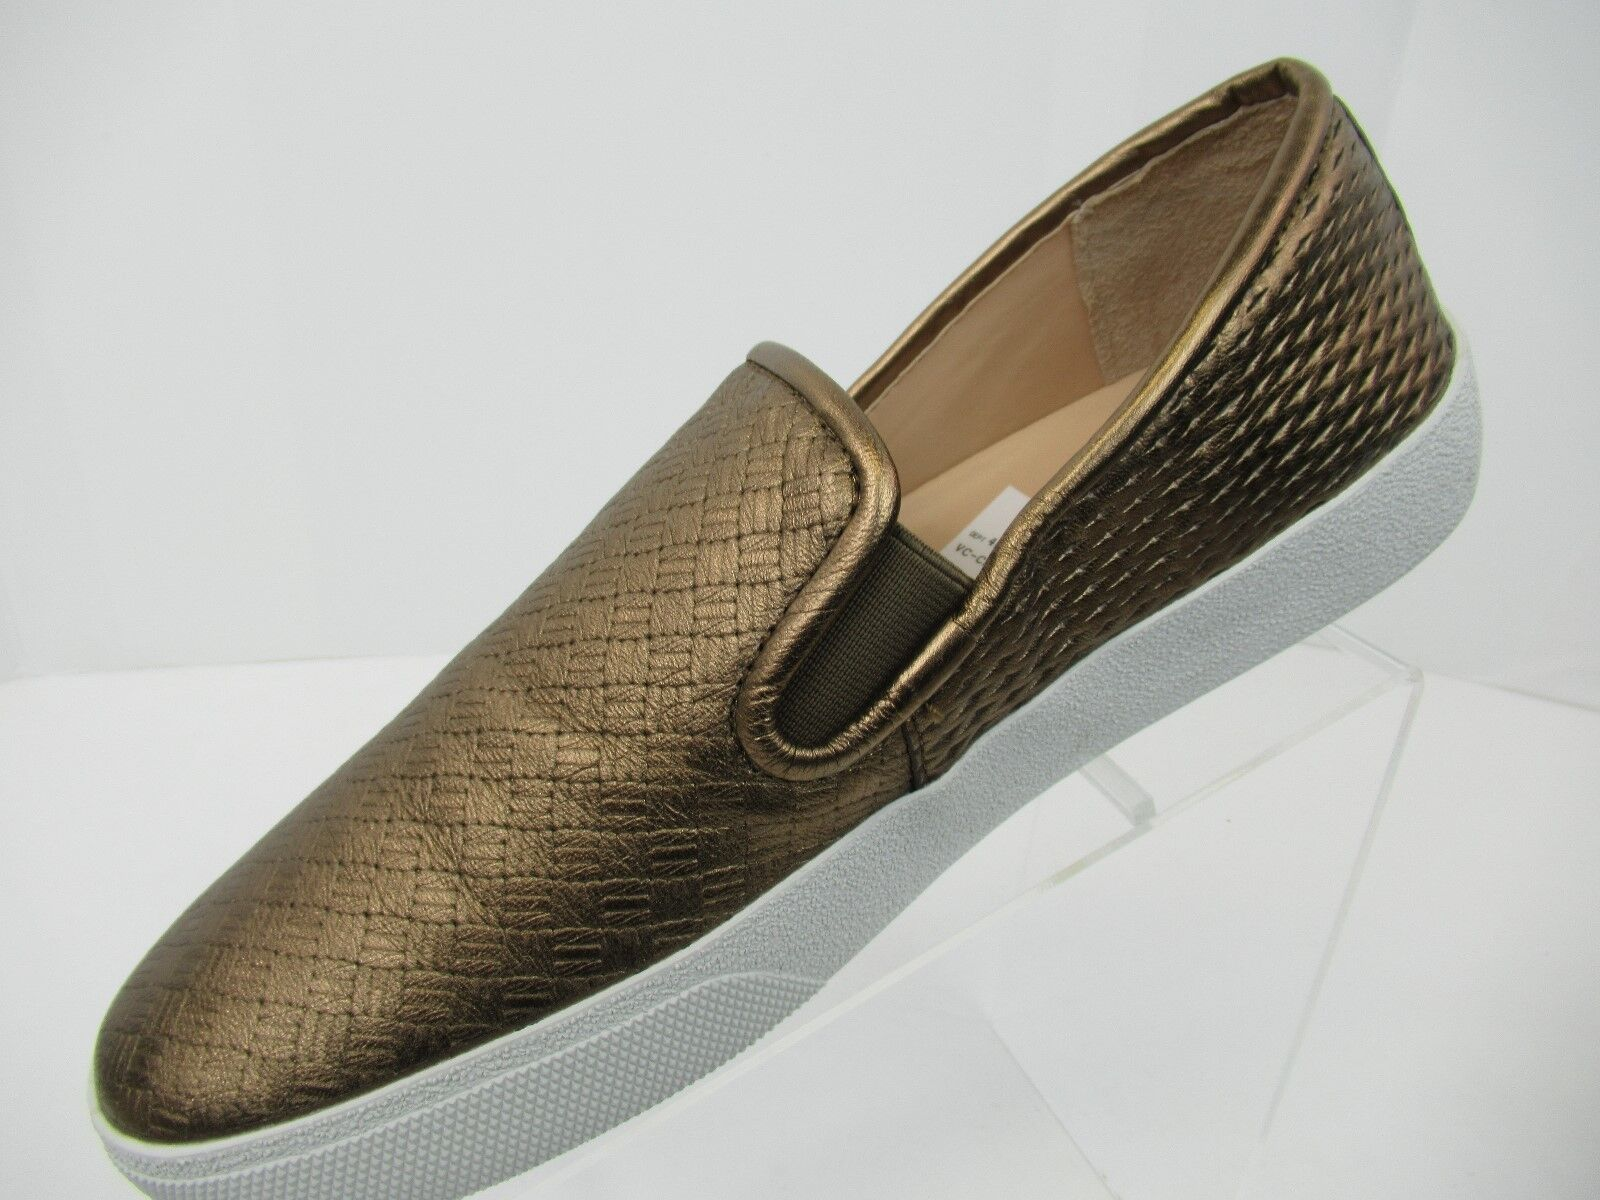 Vince Camuto Cariana Bronze Women's Leather  Slip on Sneakers Size 10M - SS0506